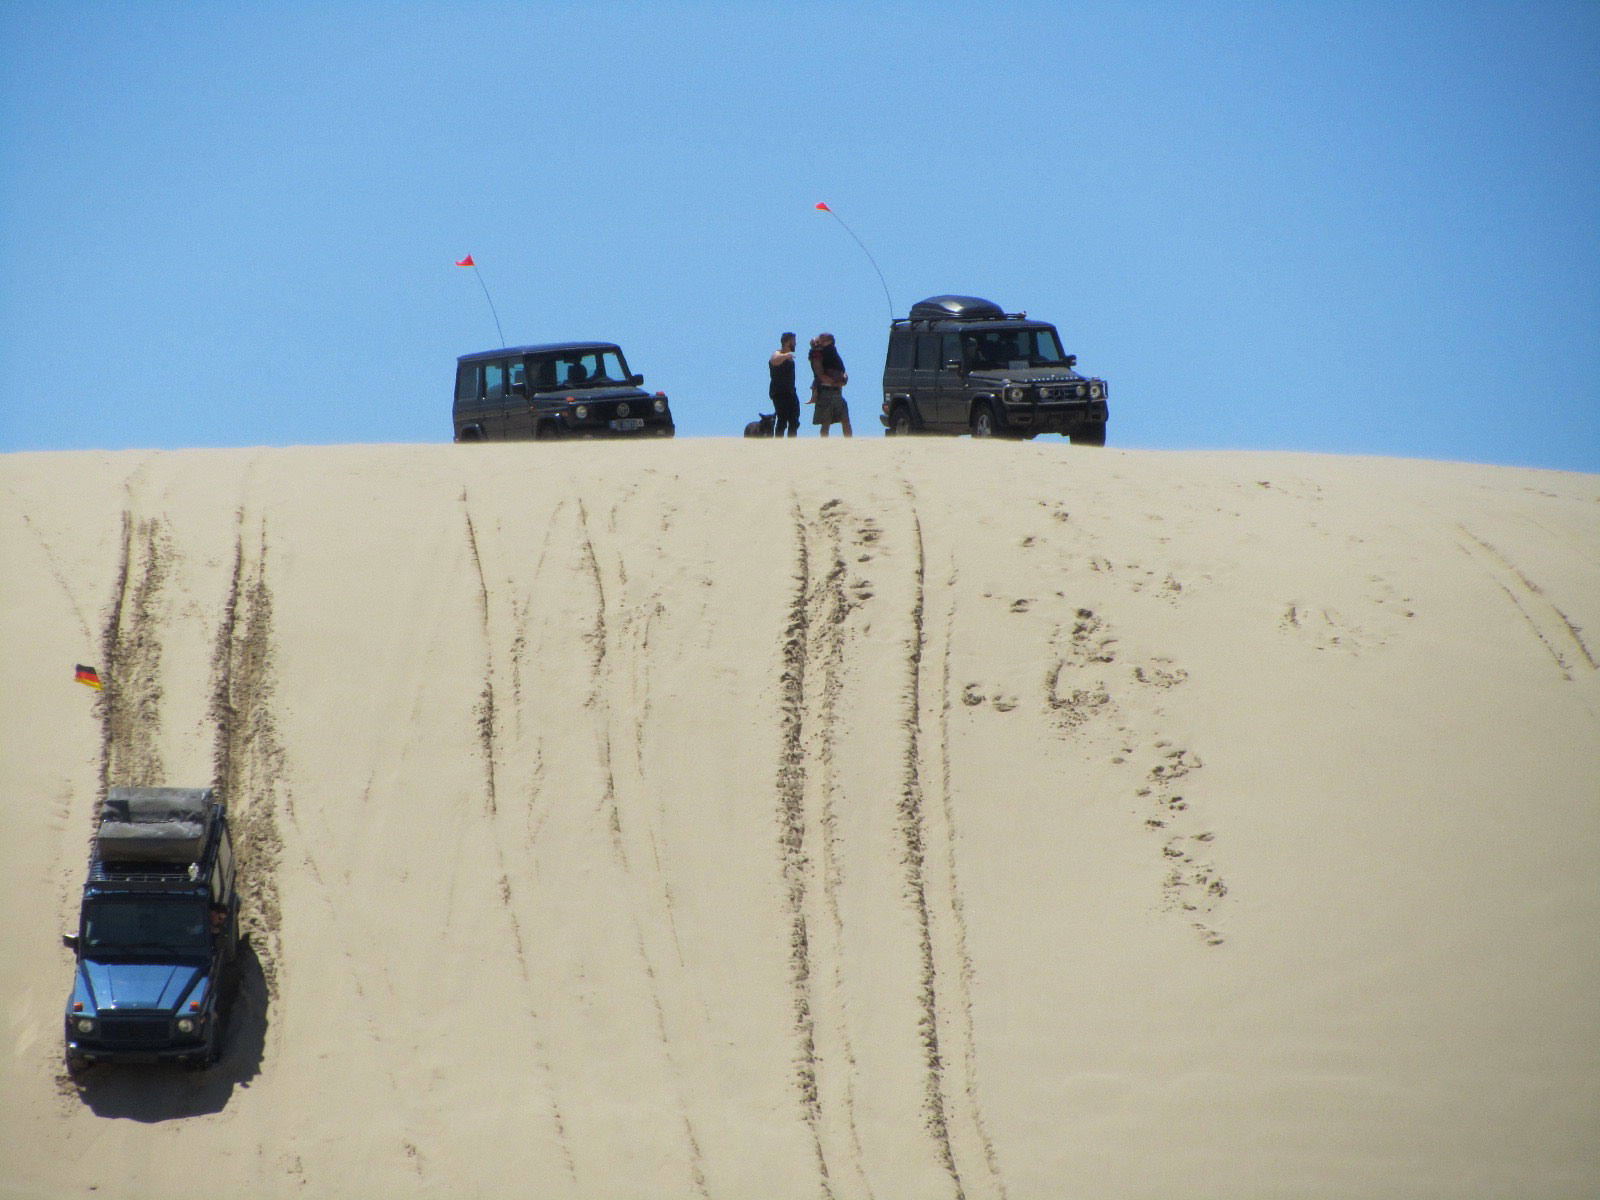 Members hit the bottom of the Oregon Dunes at about 50-55 mph in order to carry enough momentum up to the crest, at which point they're going 5 mph.